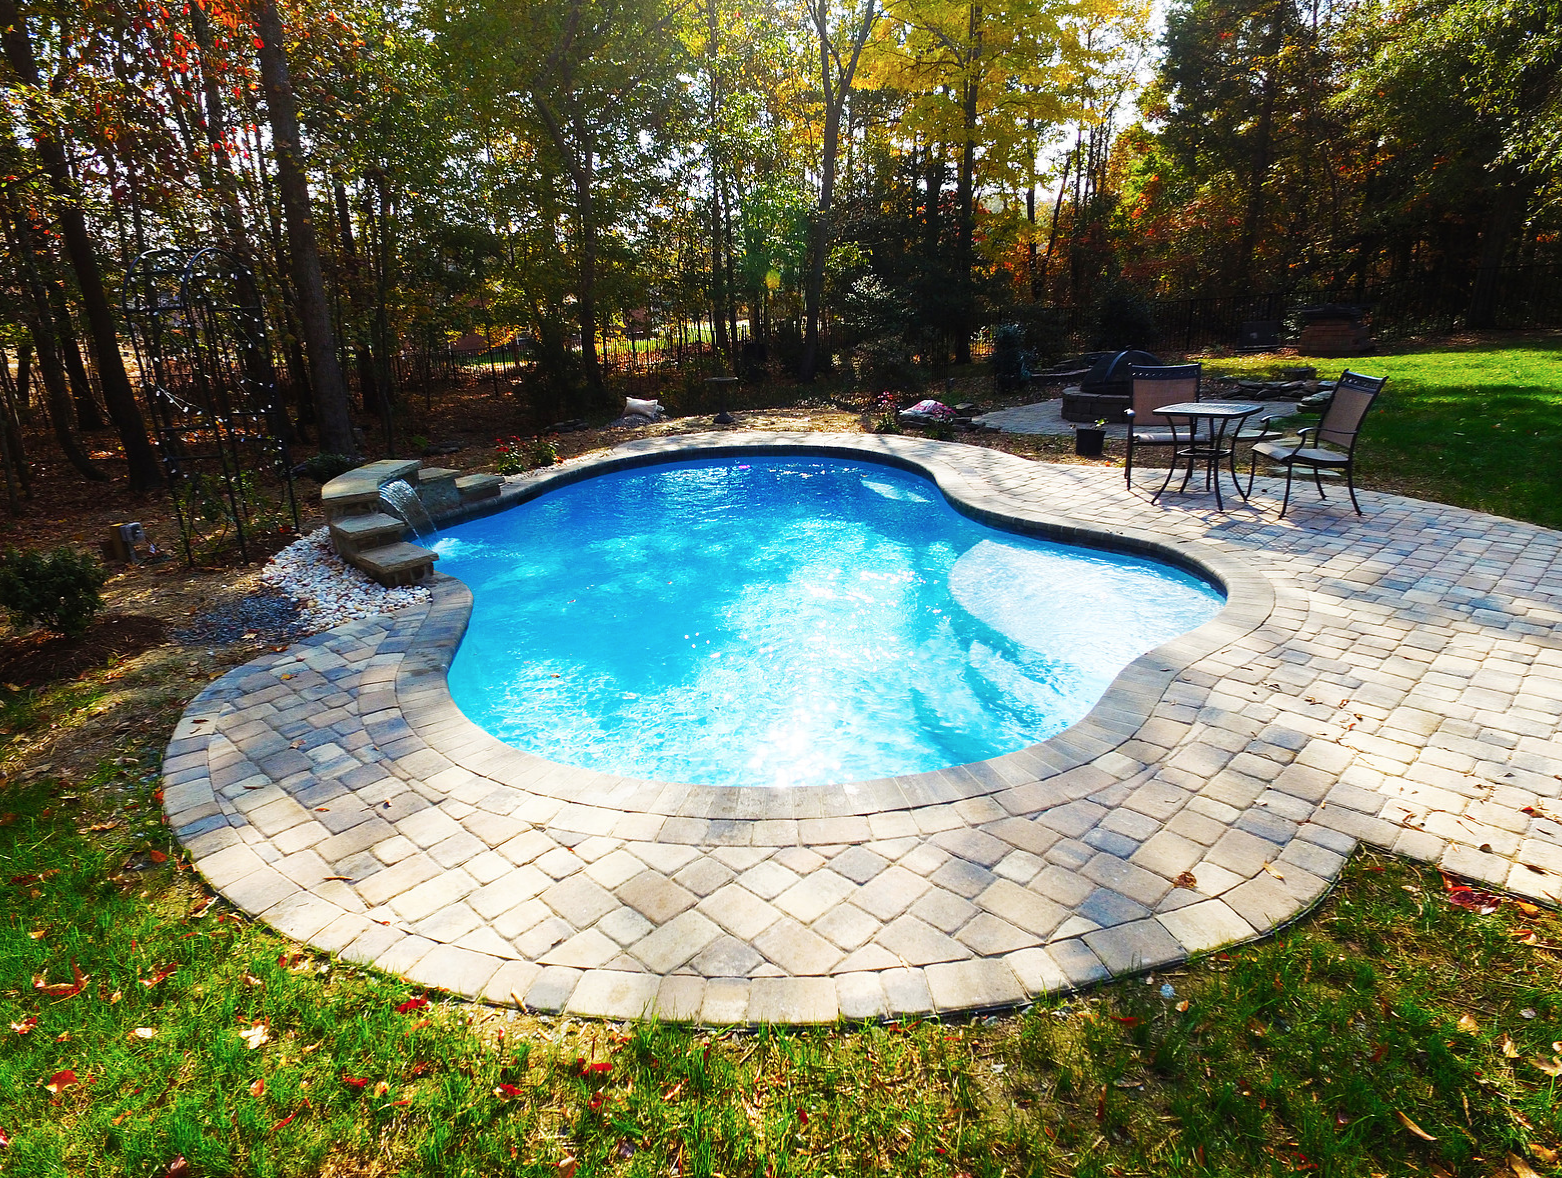 Fiberglass Swimming Pools Vs Concrete Swimming Pools Which